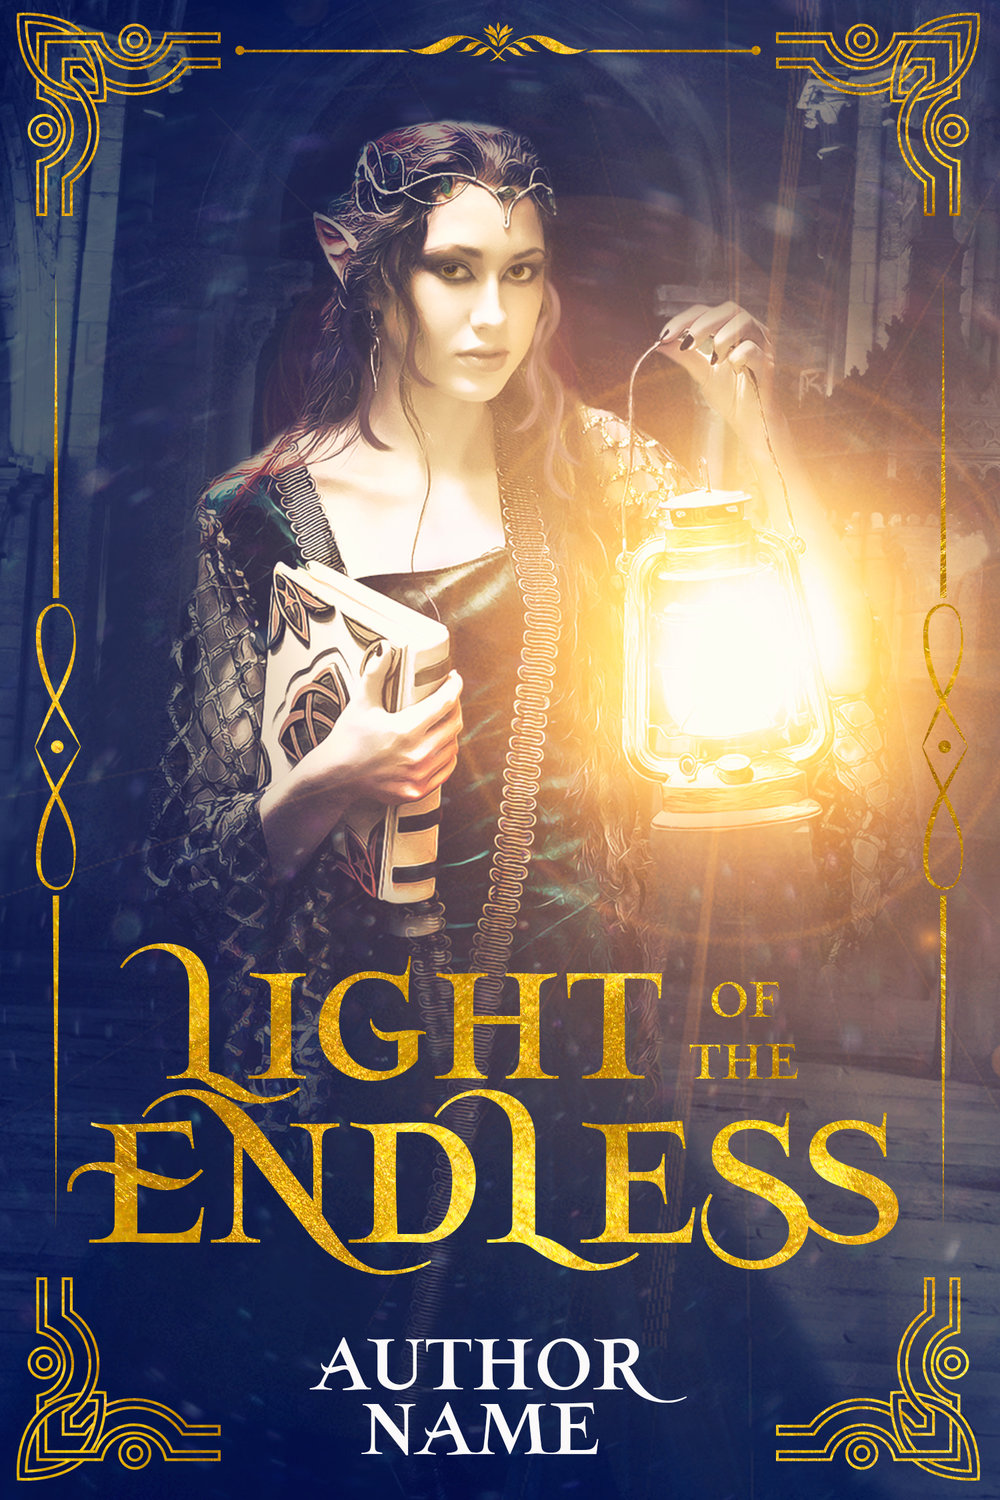 $150 - Light of the Endless